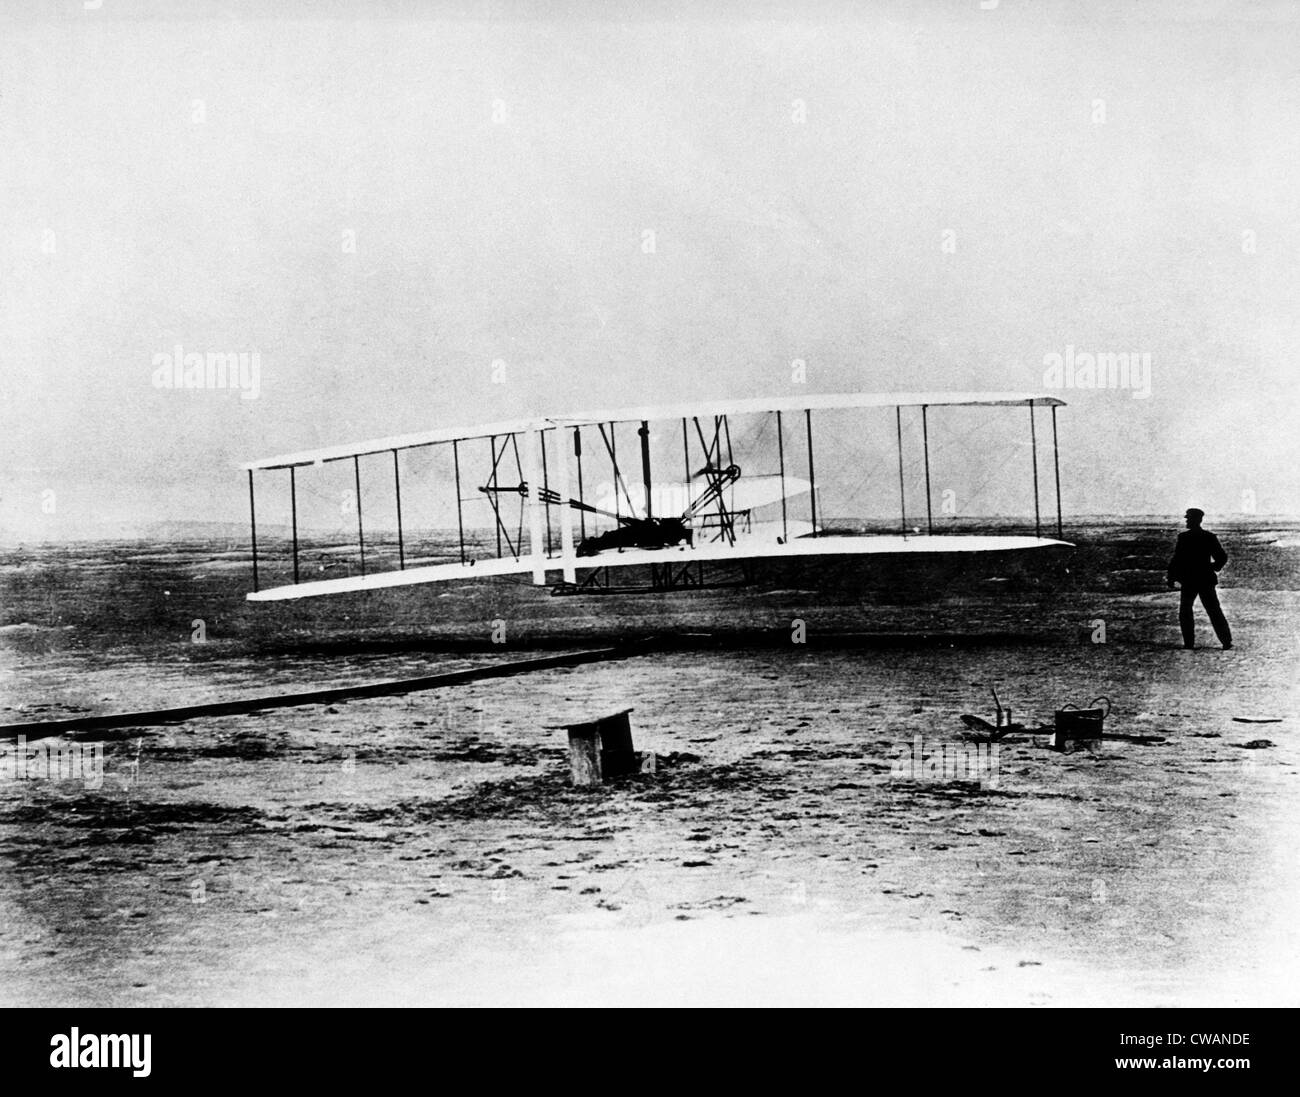 Orville and Wilbur Wright, (aka The Wright Brothers), around the time of their first flight, at Kitty Hawk, North - Stock Image